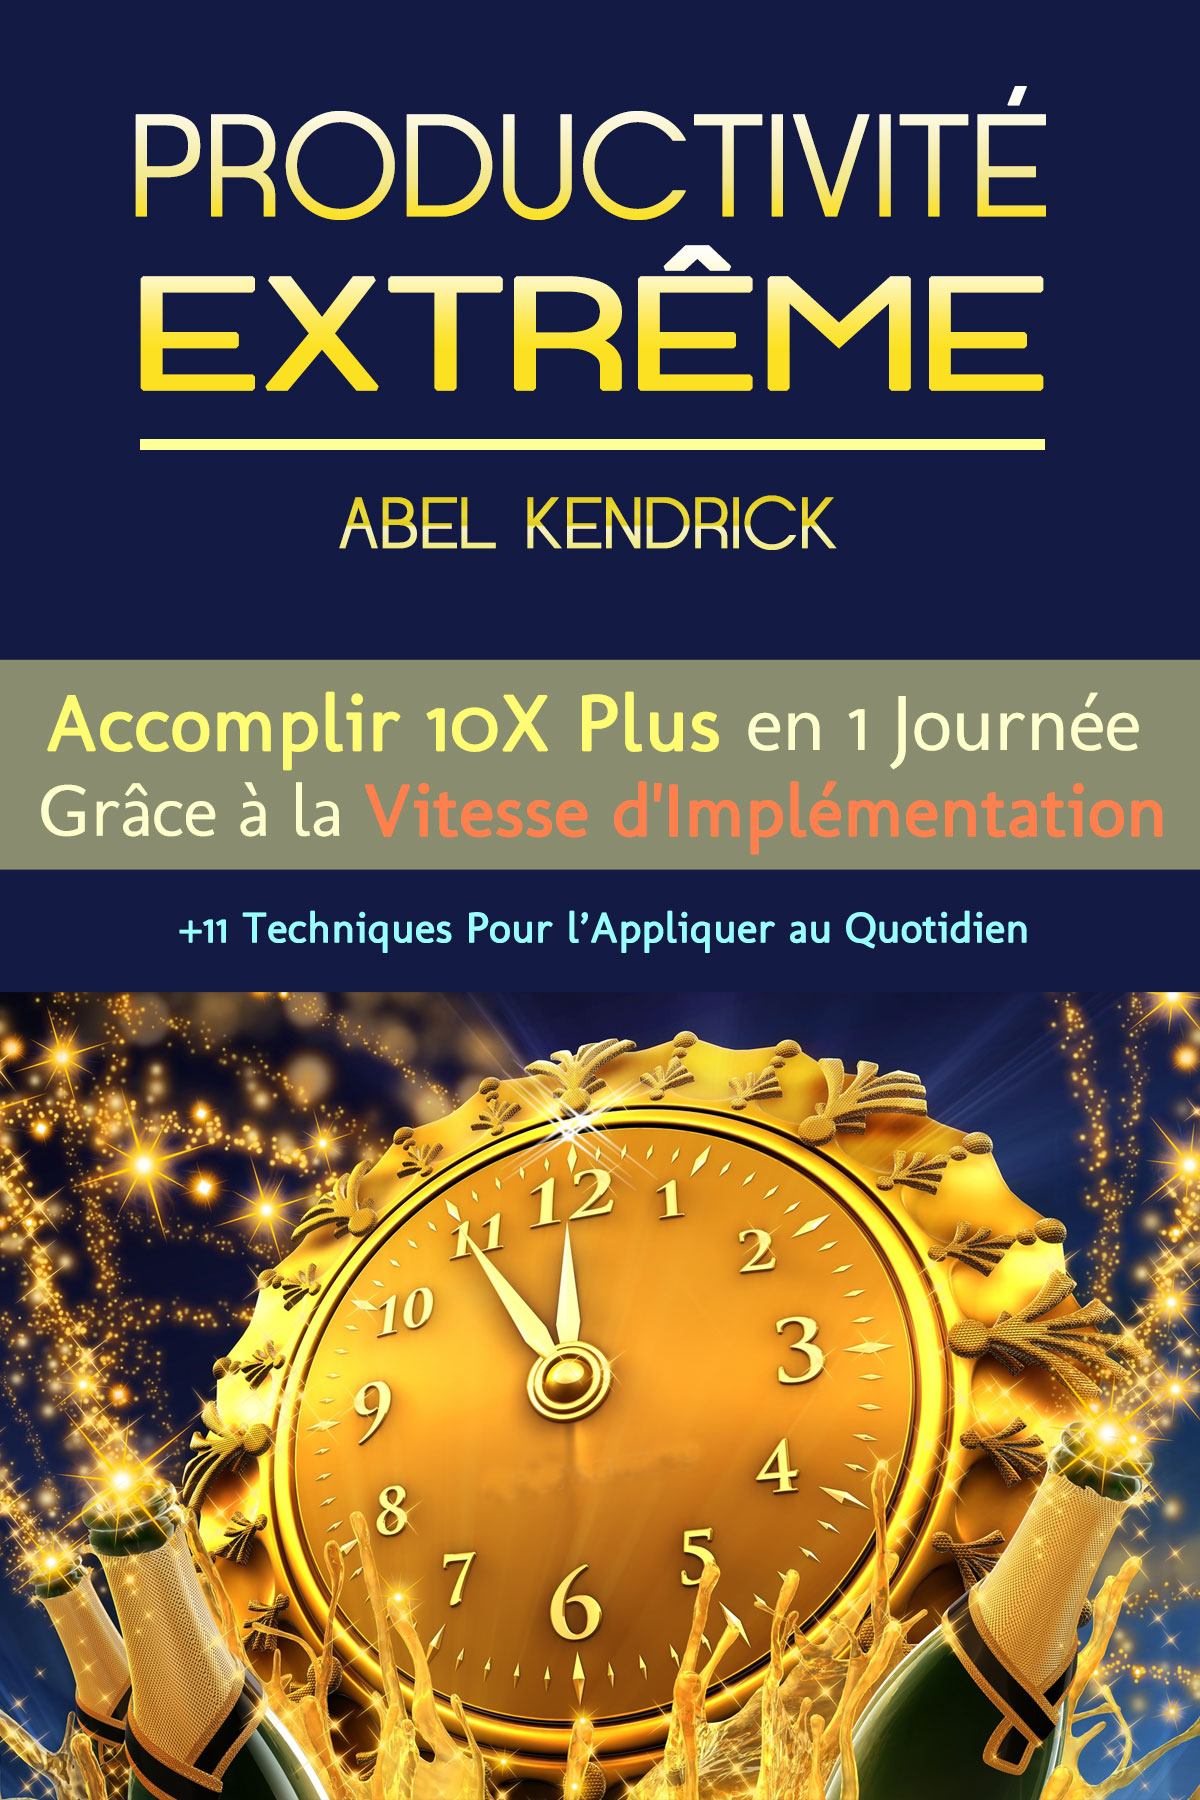 technique de persuasion amoureuse pdf